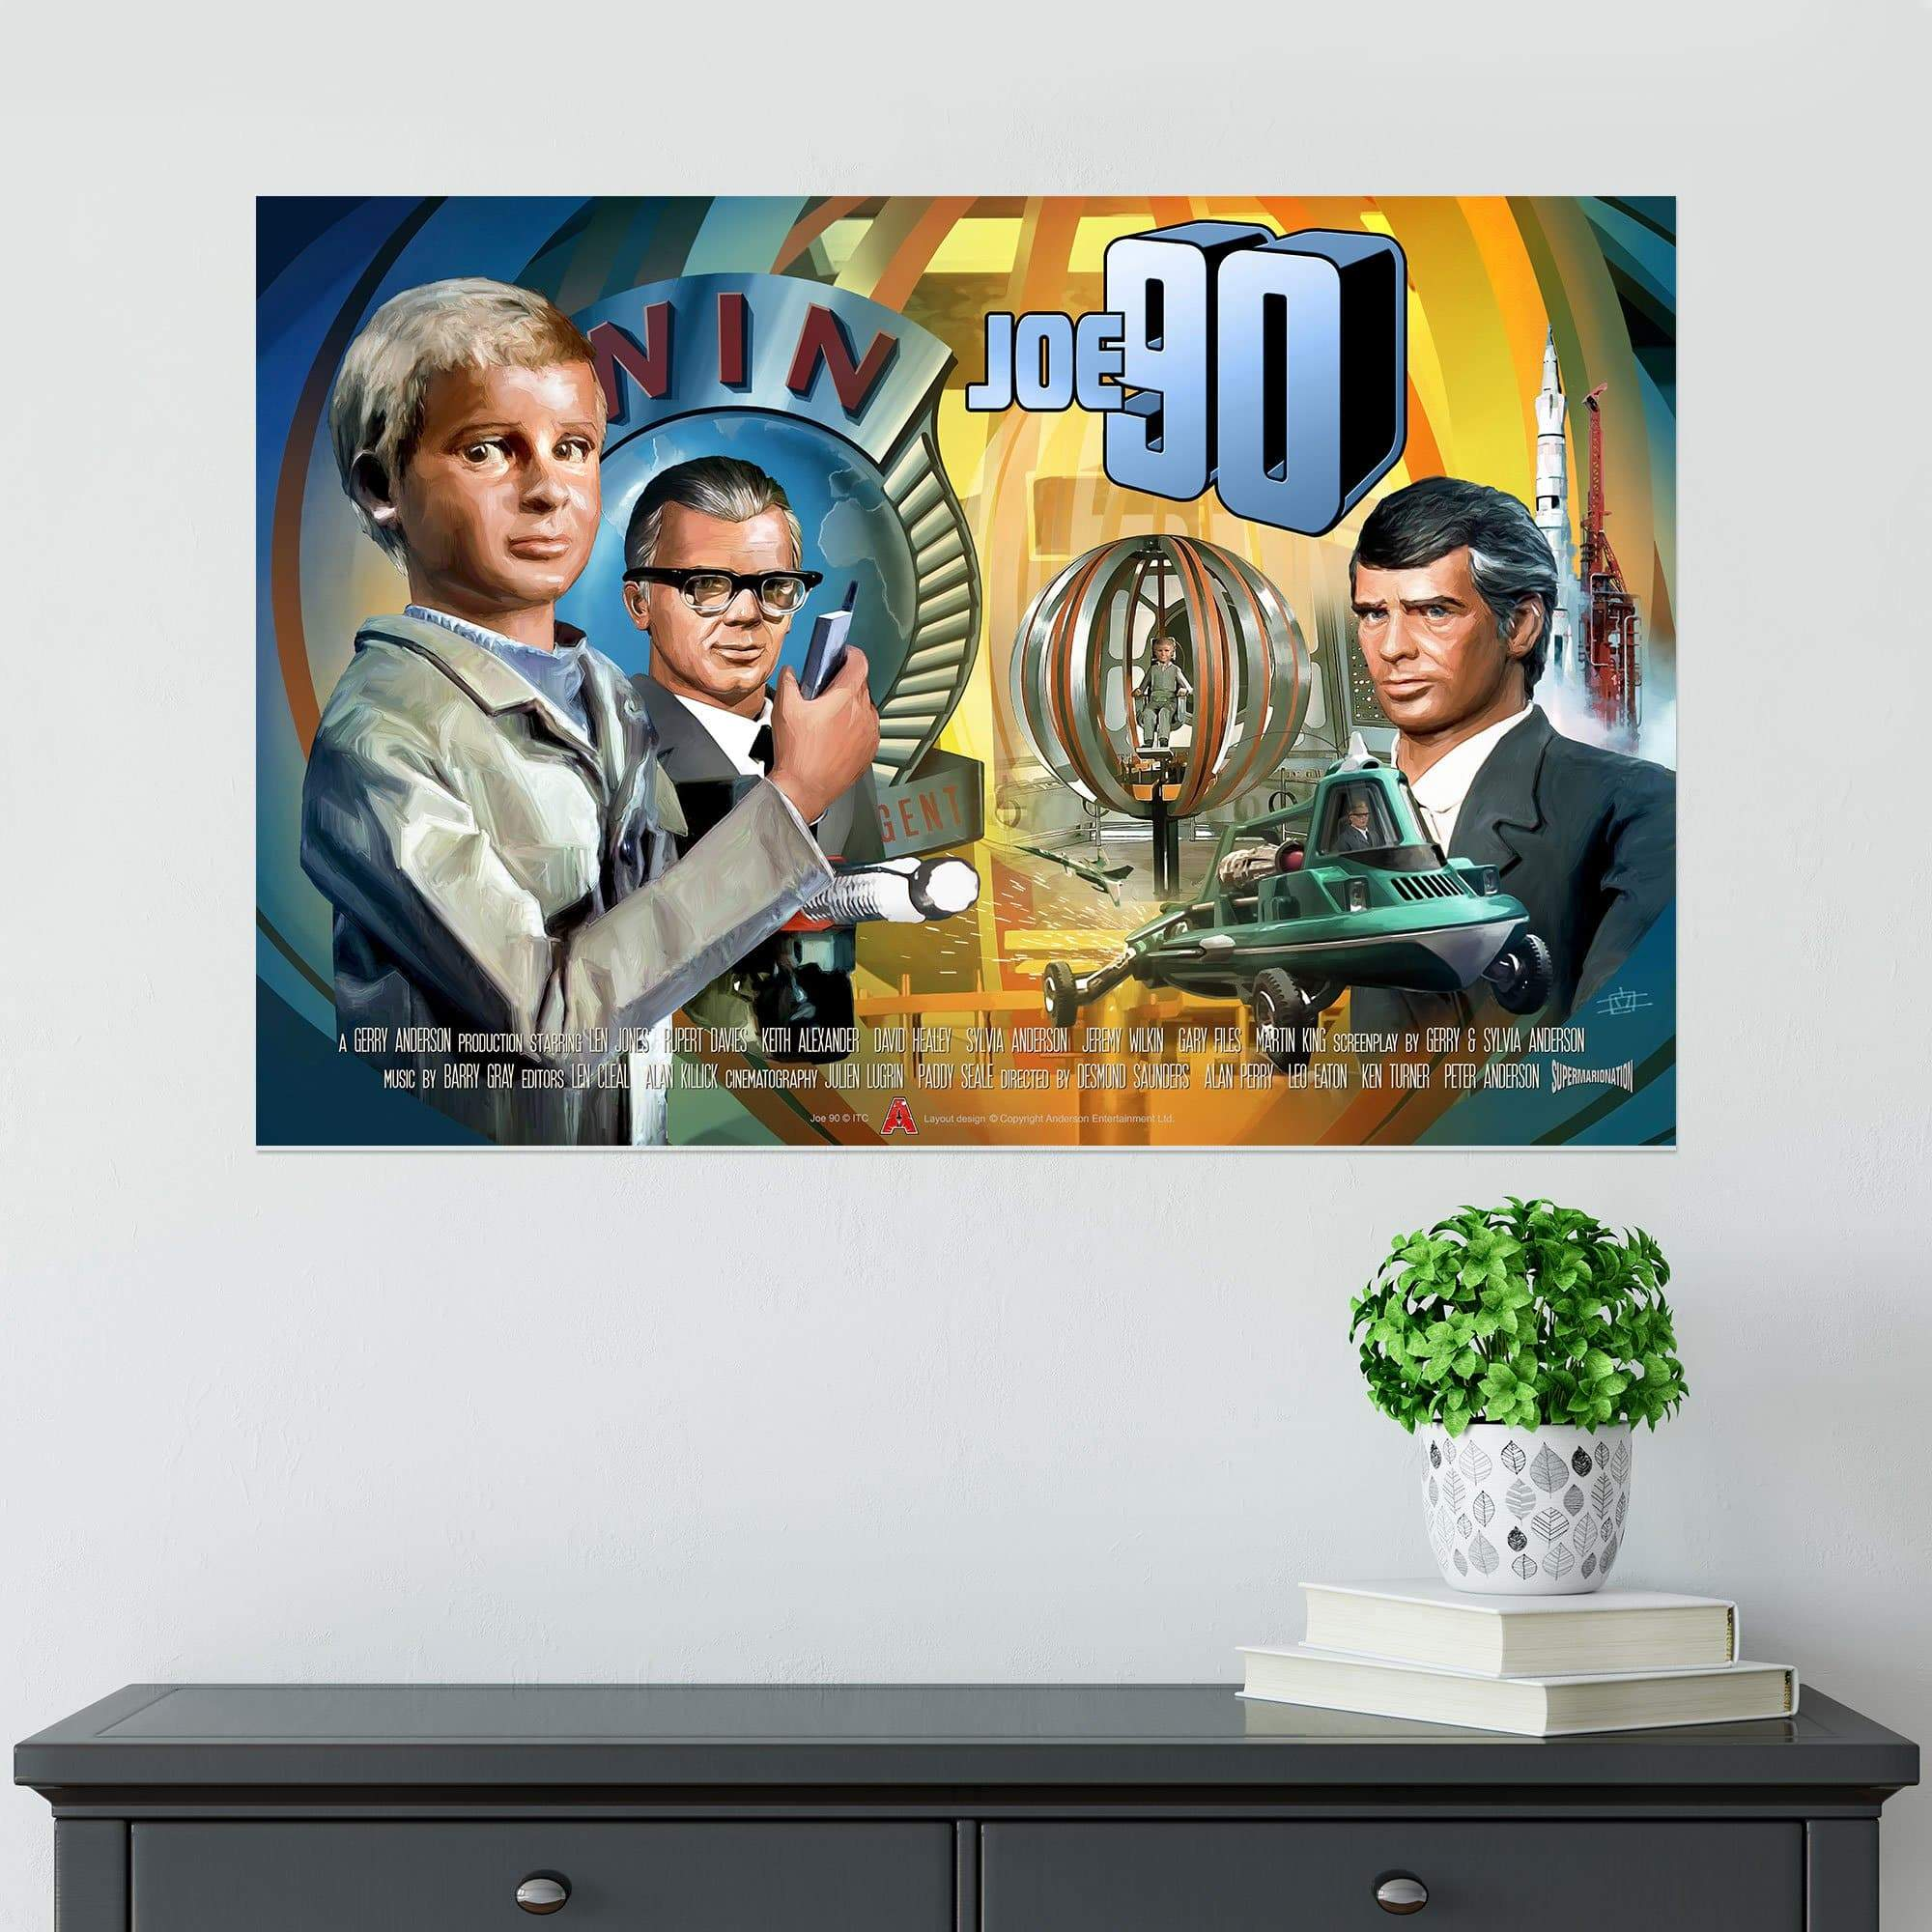 Joe 90 Poster [Official & Exclusive] - The Gerry Anderson Store